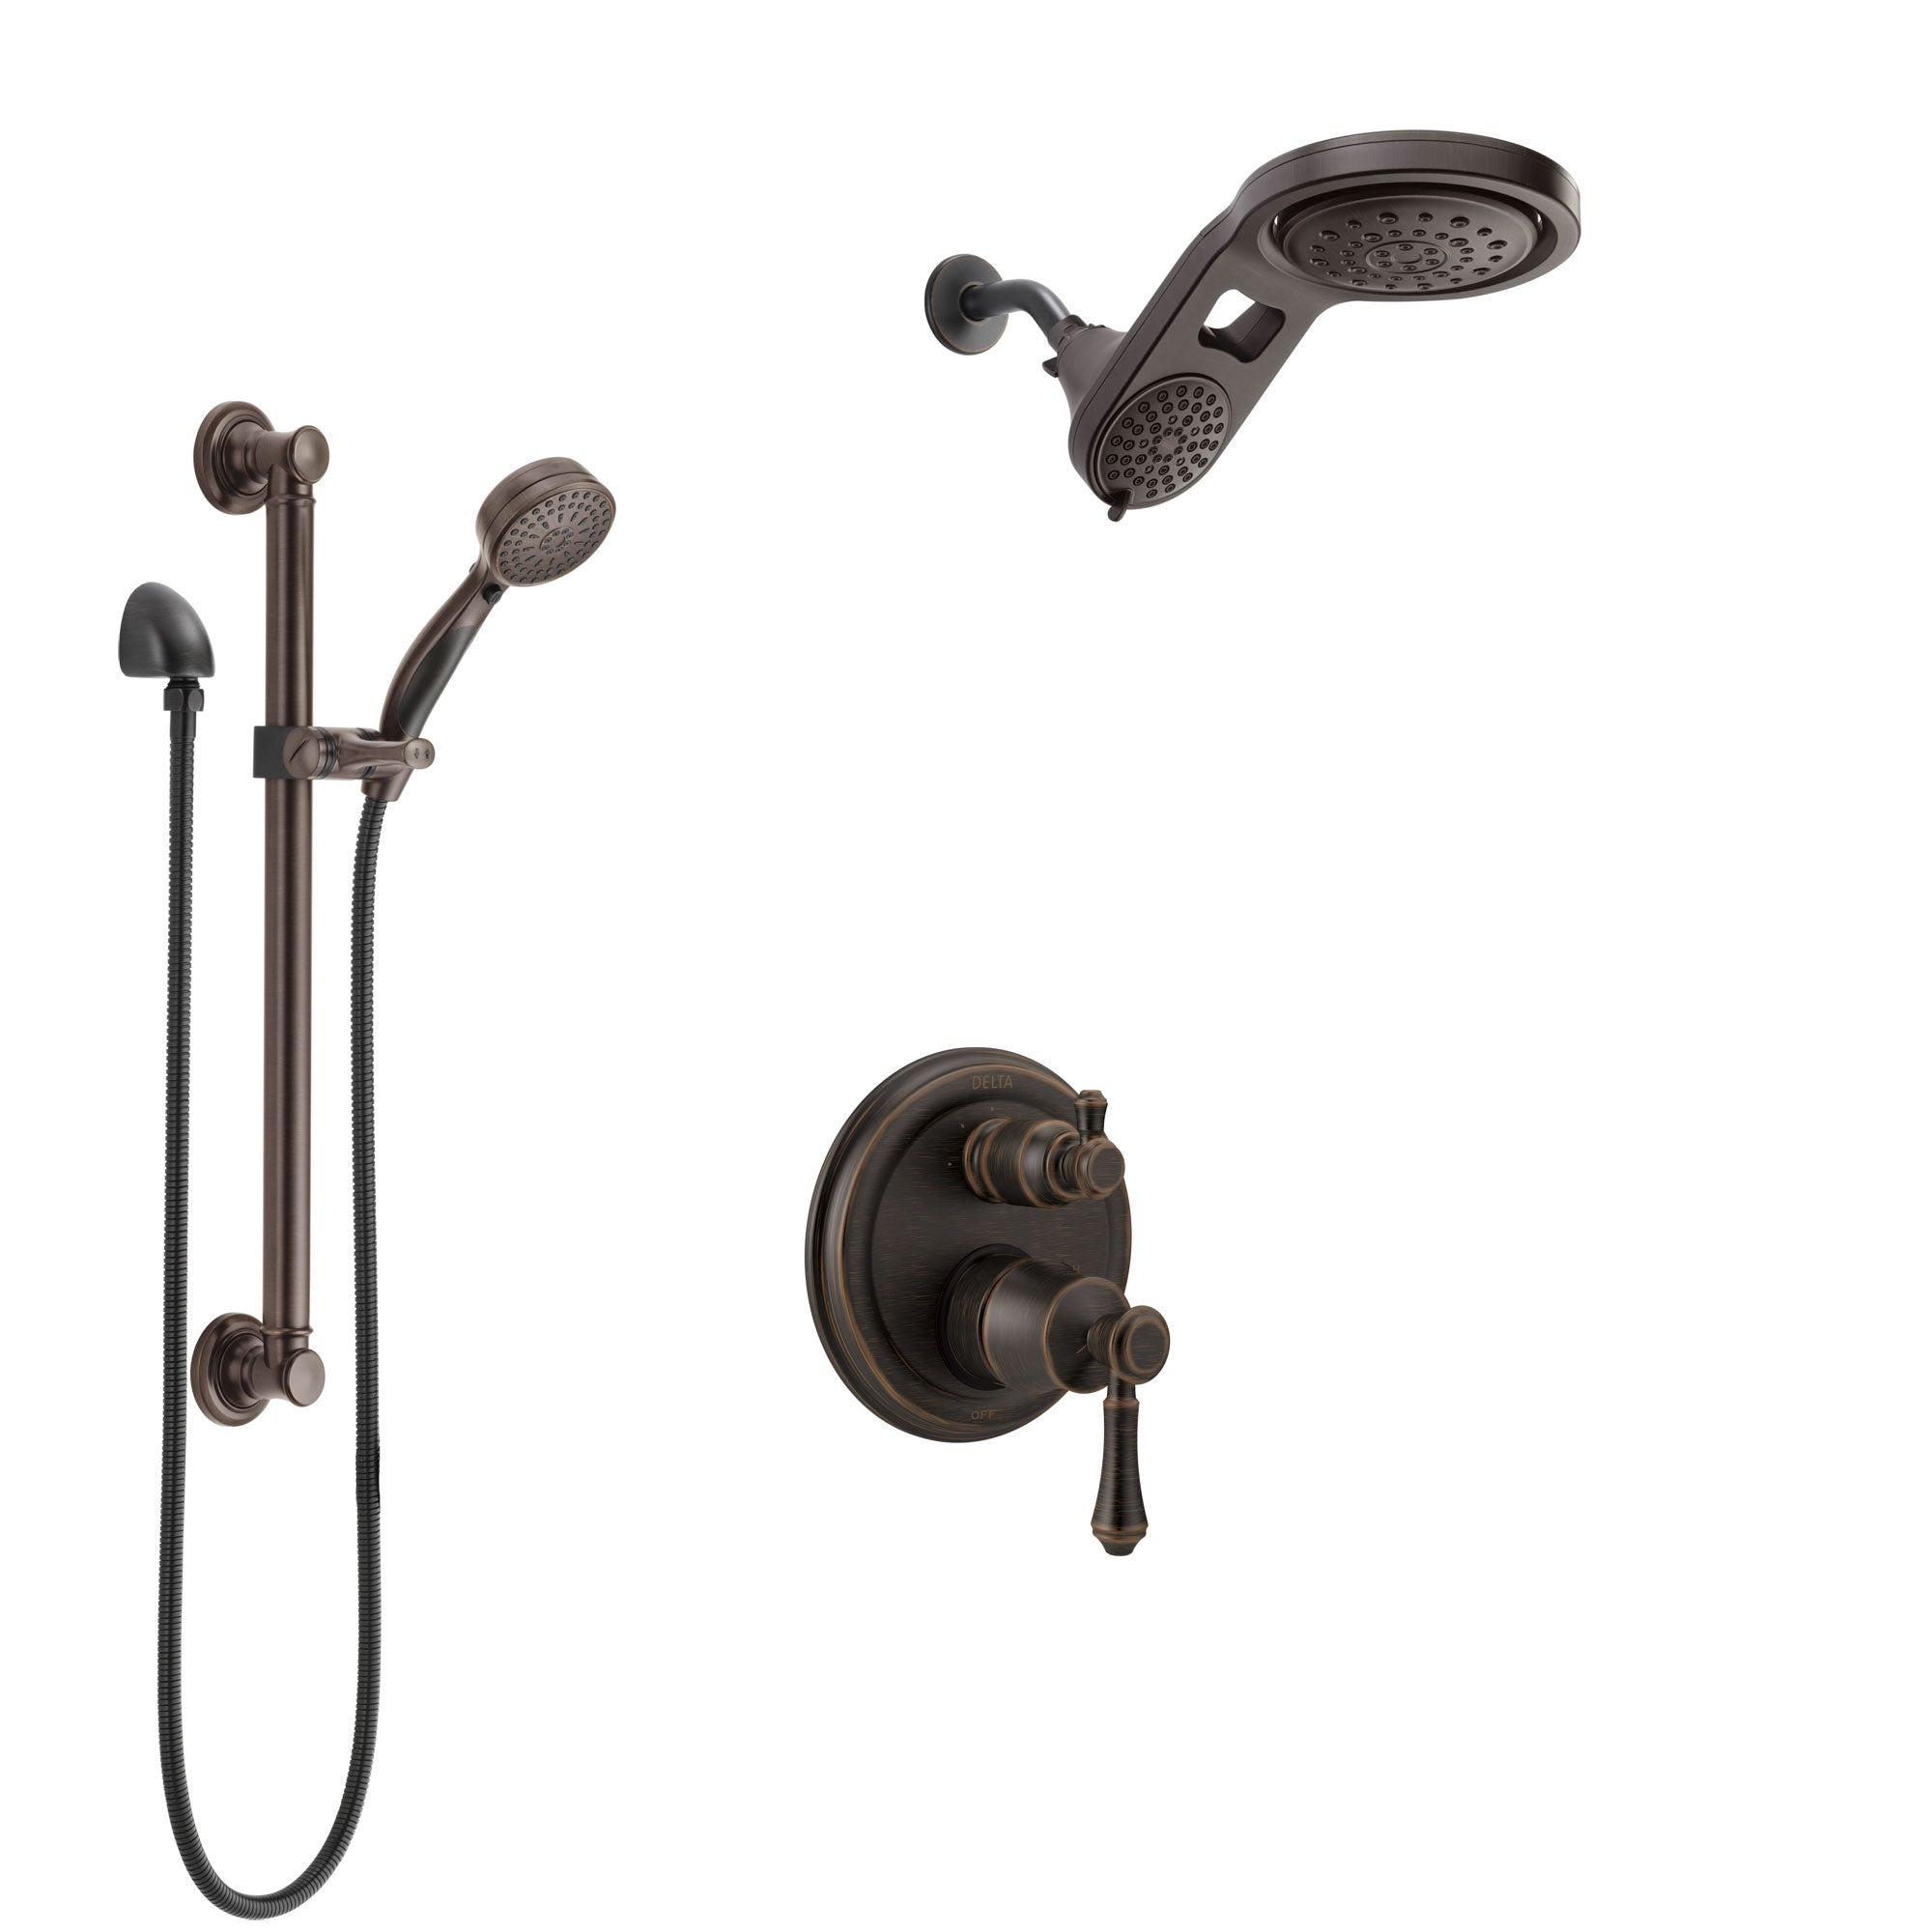 Delta Cassidy Venetian Bronze Shower System with Control Handle, Integrated Diverter, Dual Showerhead, and Hand Shower with Grab Bar SS24897RB5